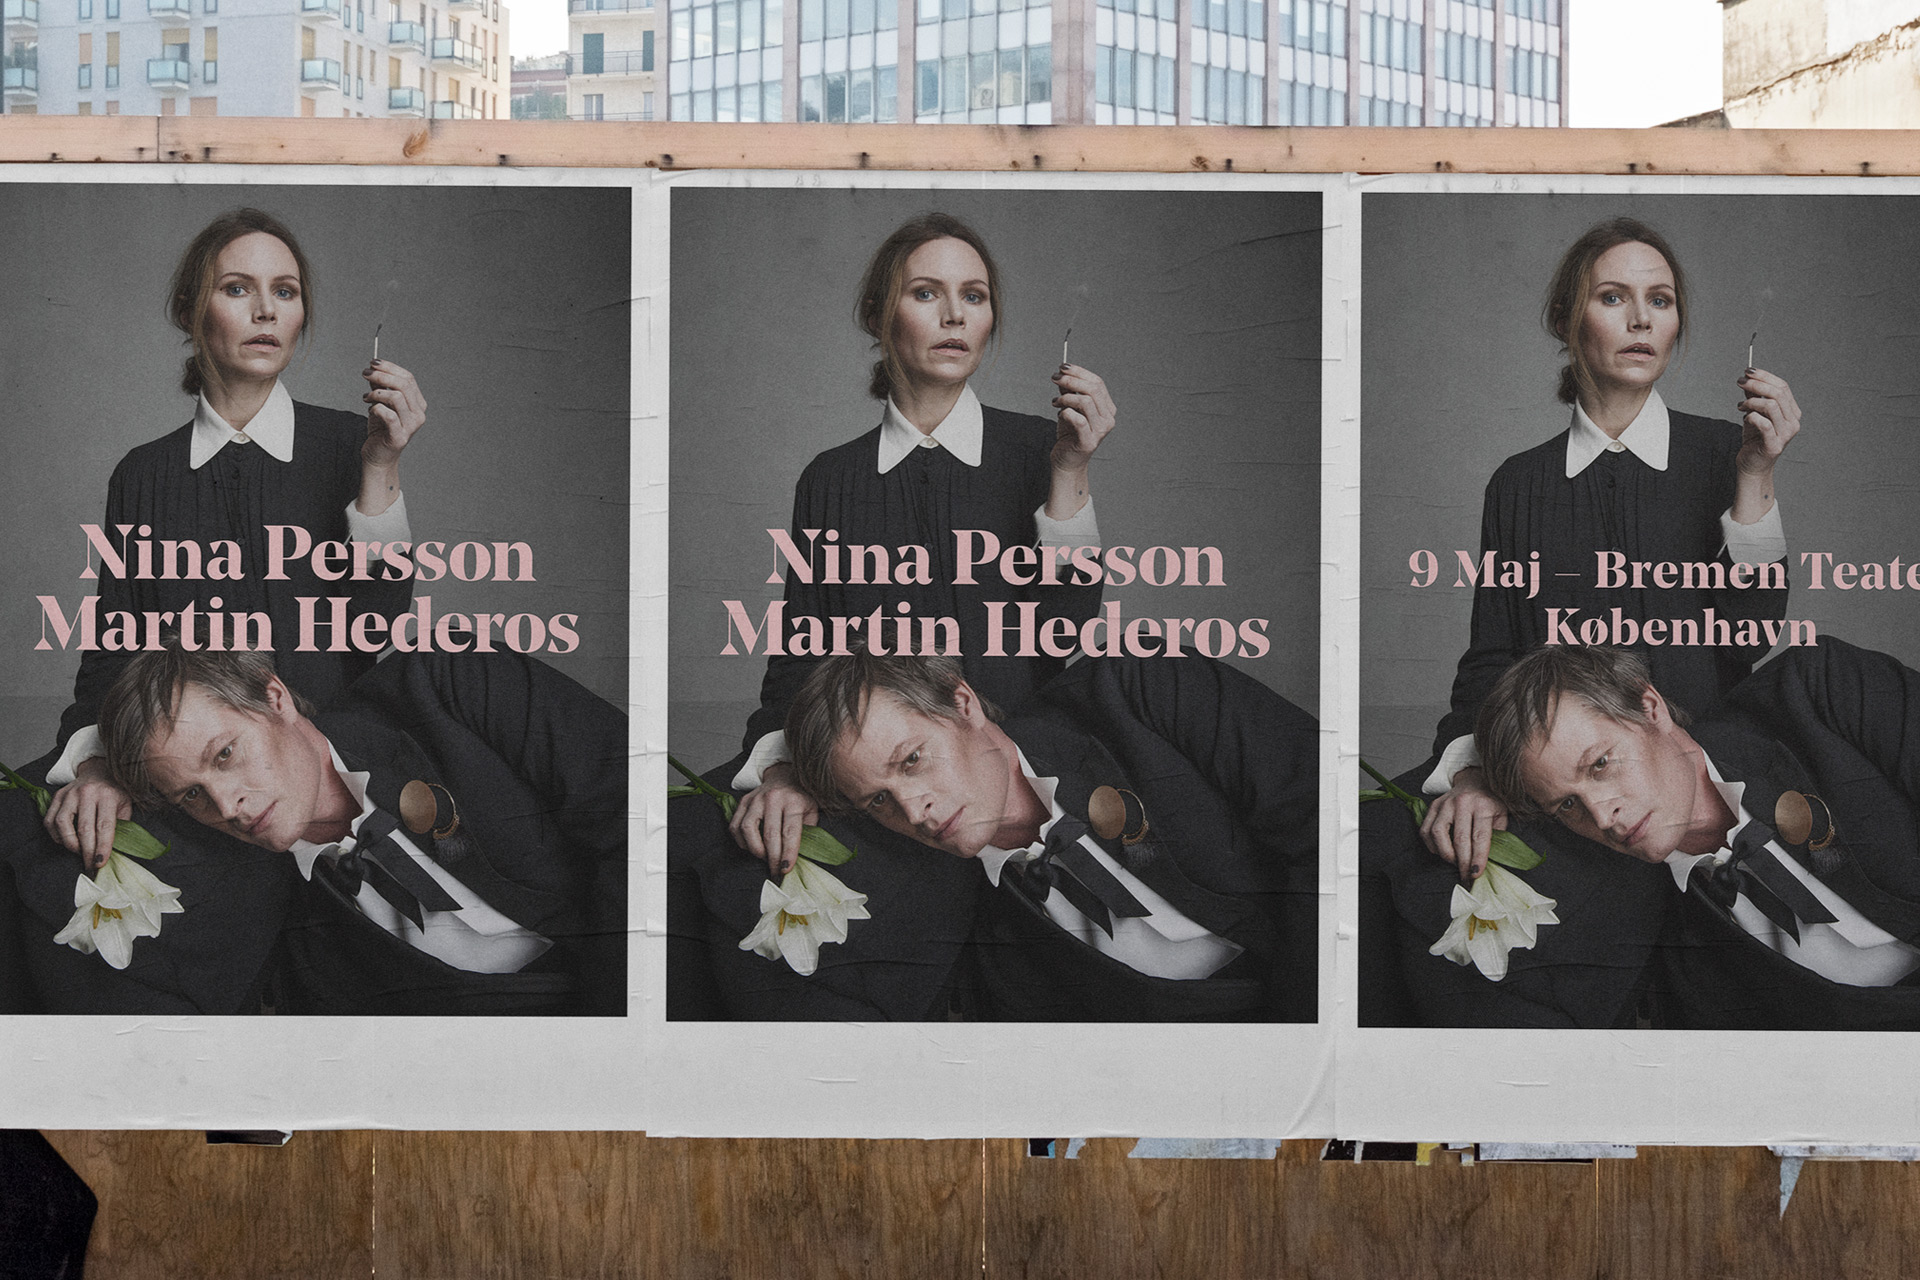 nina-persson-poster-00